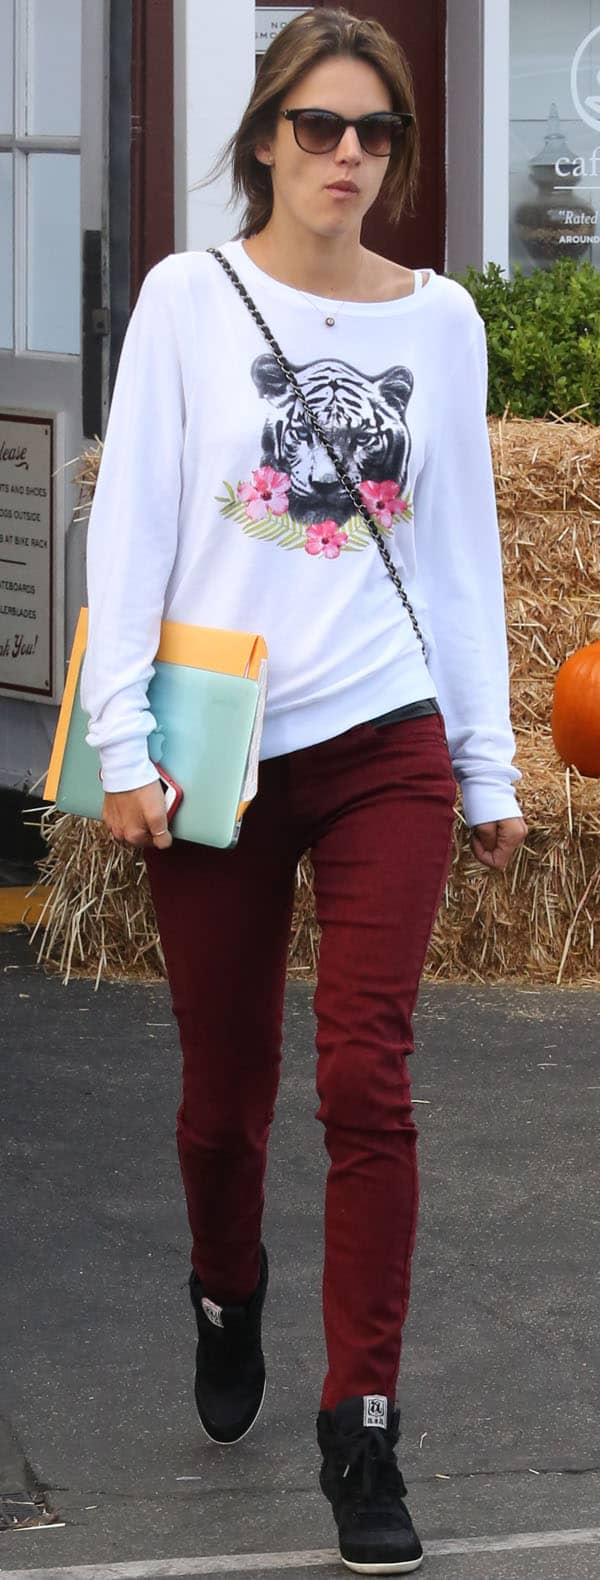 Alessandra Ambrosio wore a pair of red leopard-print jeans by BlankNYC, which she teamed up with a tiger-print graphic shirt